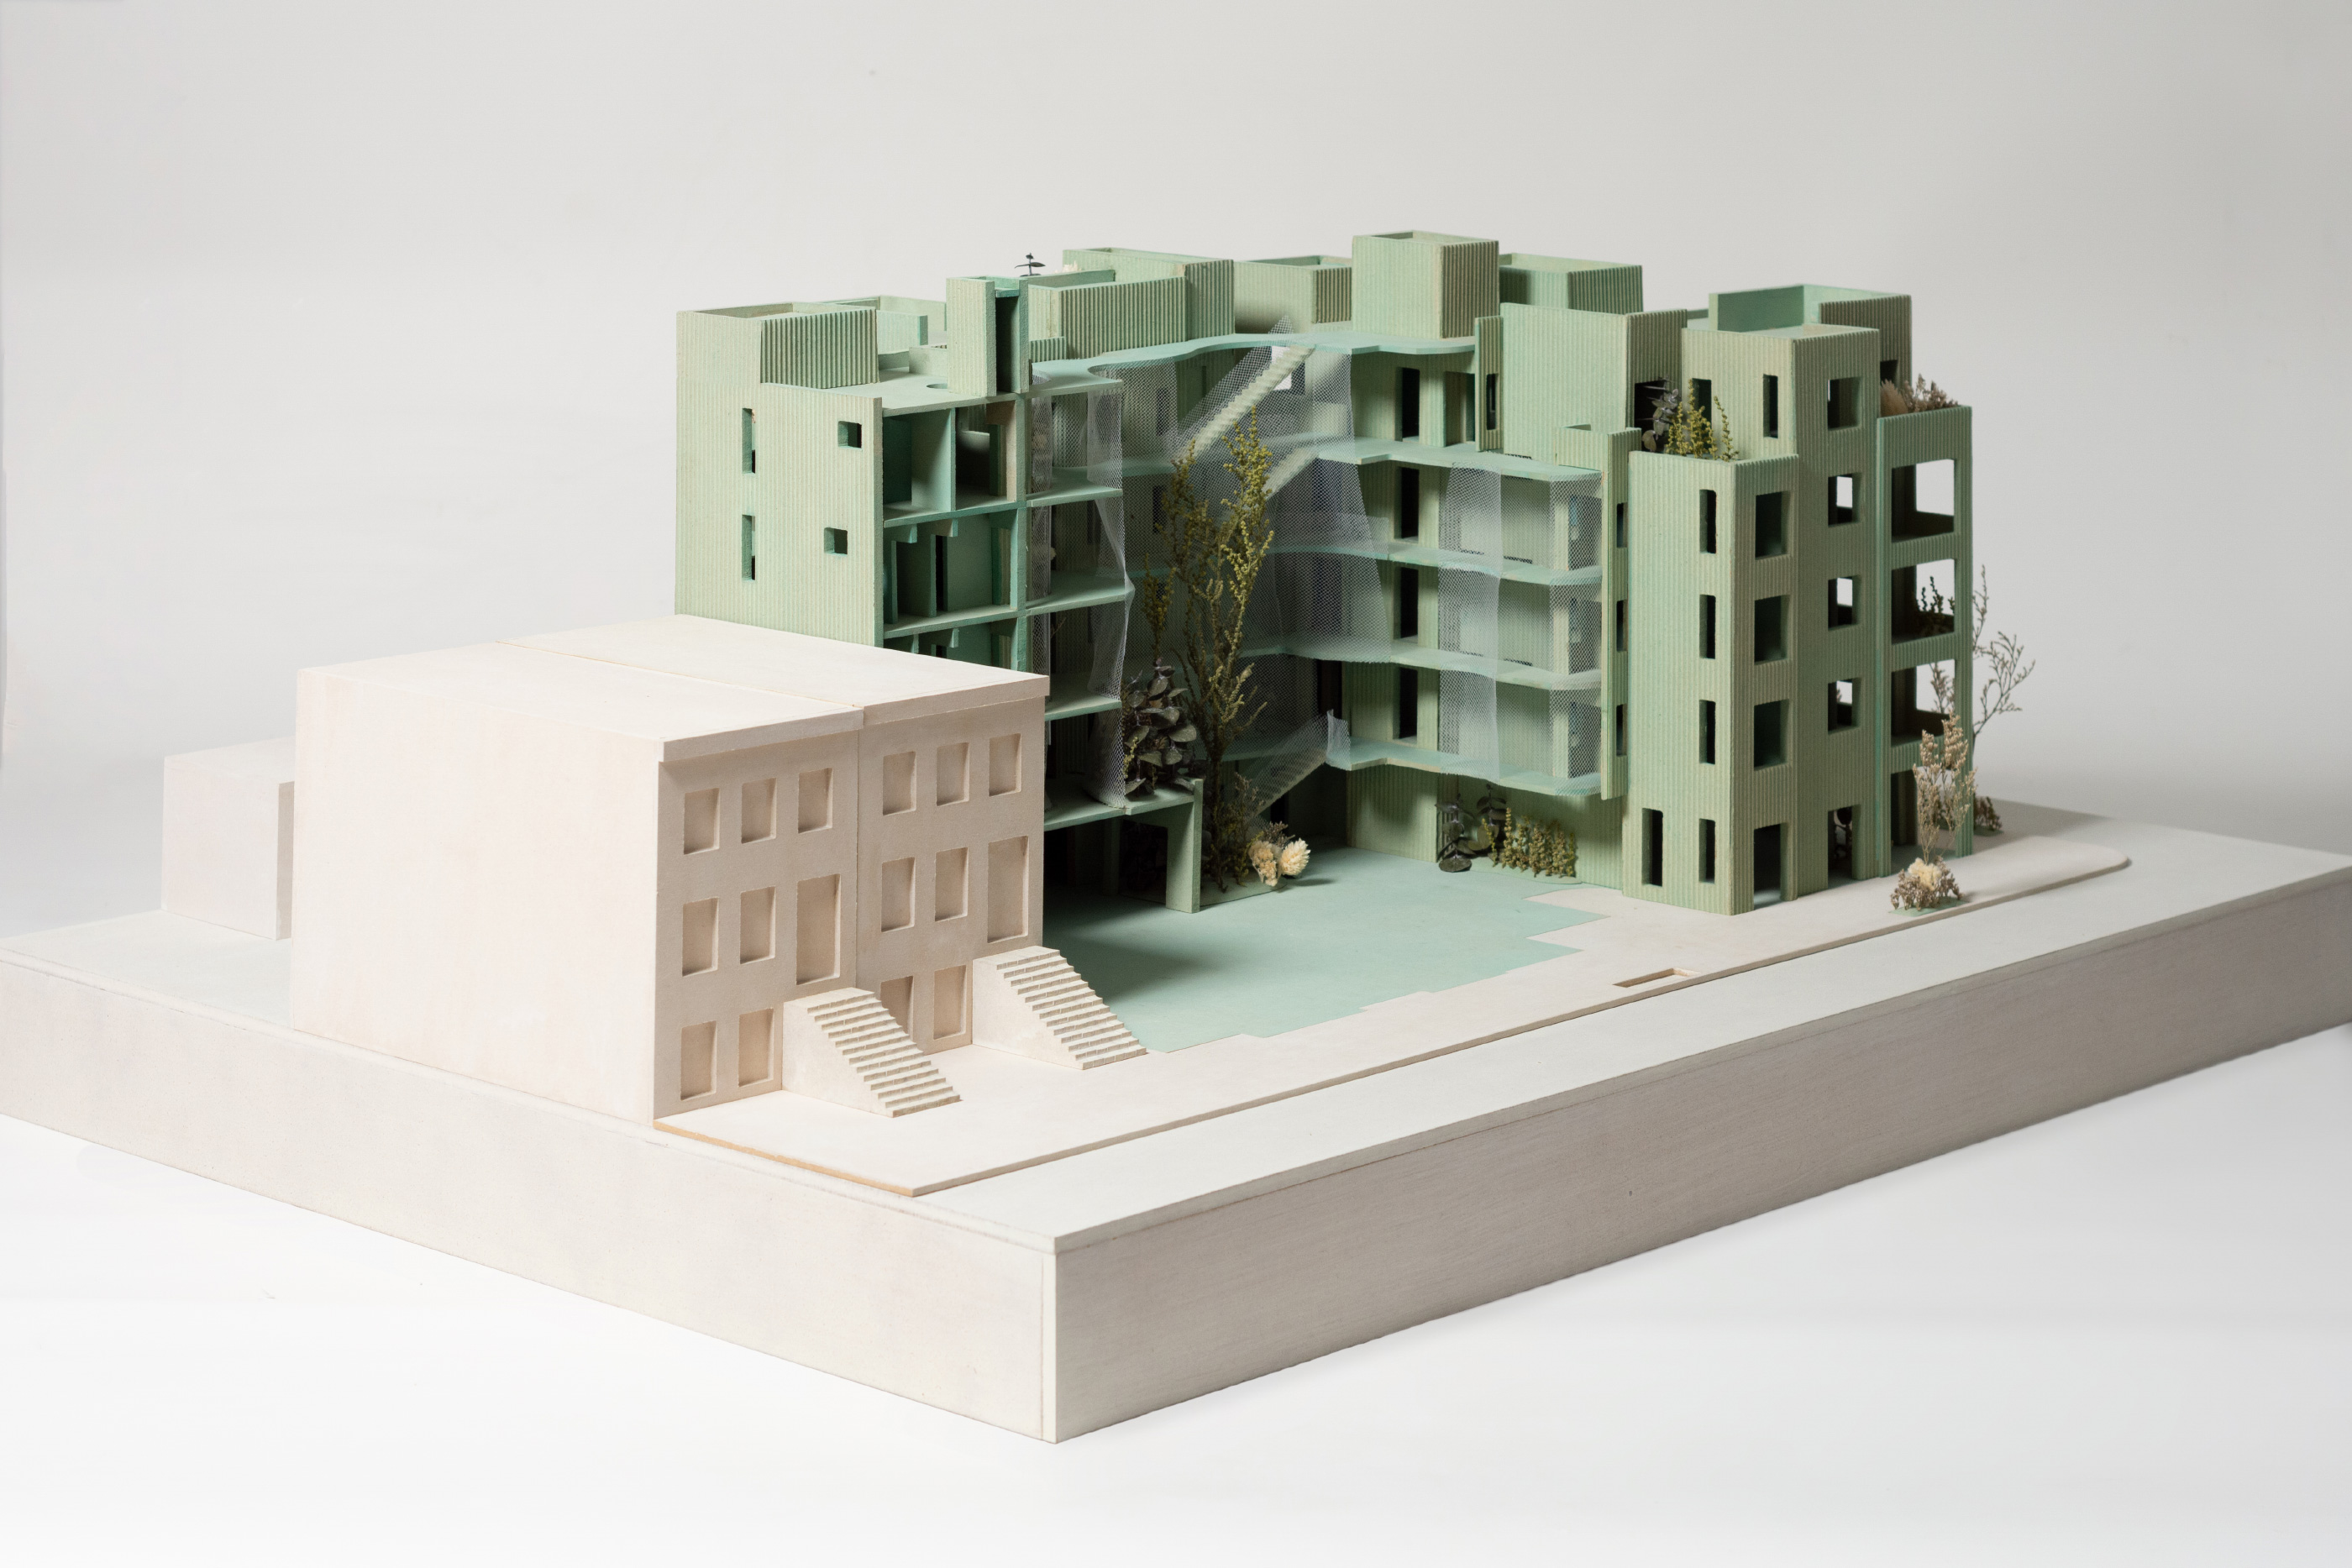 Model of an apartment building with large exposed courtyard